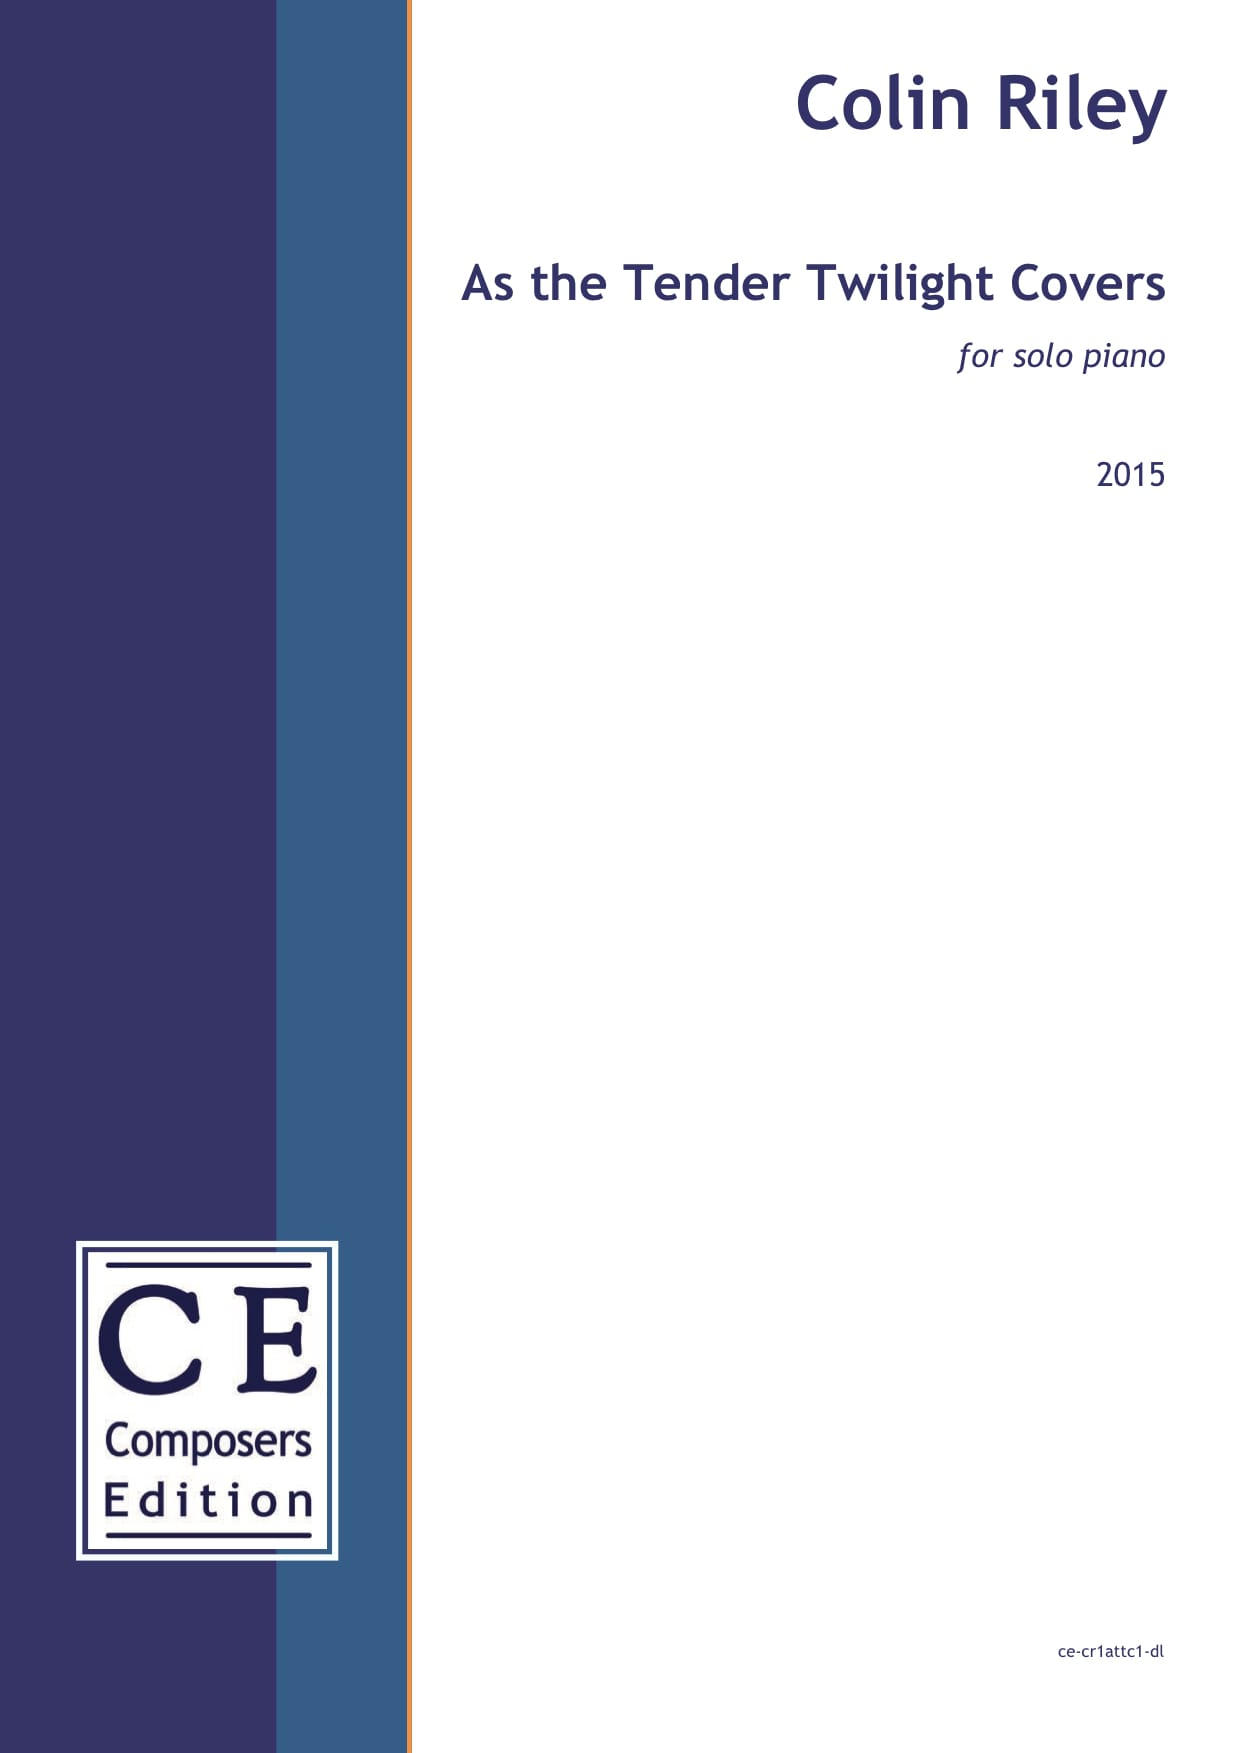 Colin Riley: As the Tender Twilight Covers for solo piano